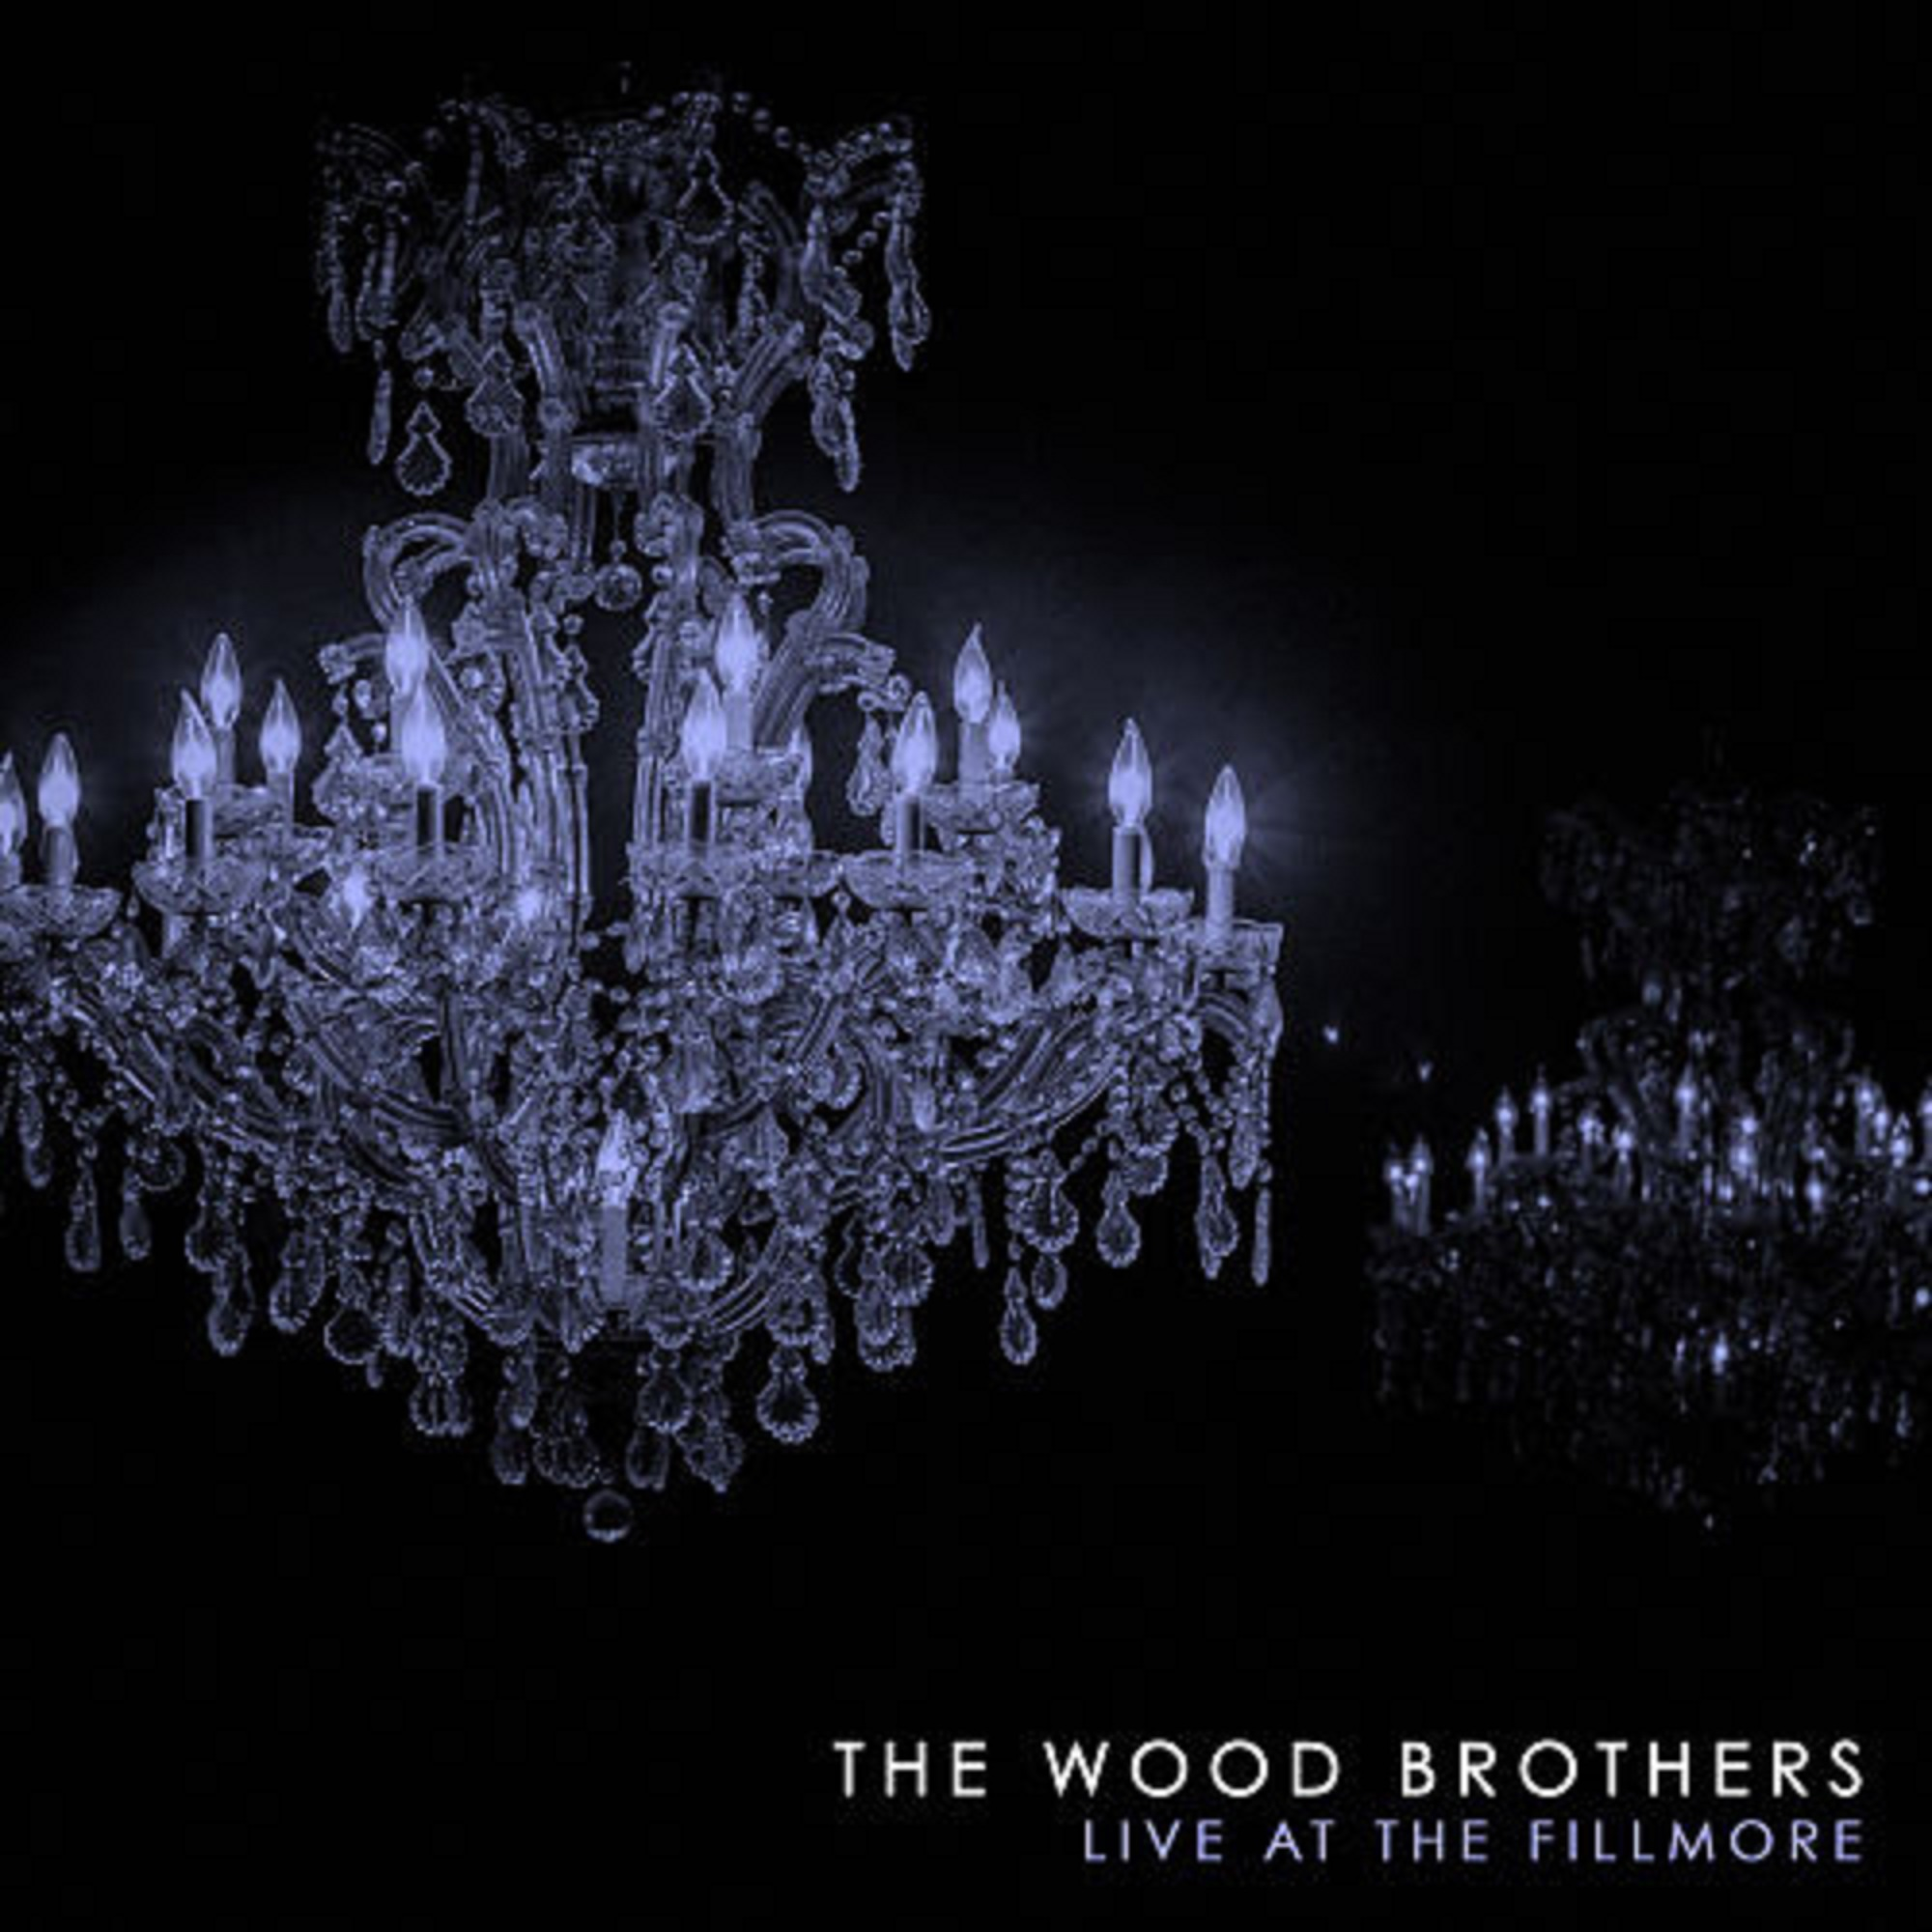 The Wood Brothers To Release 'Live At The Fillmore' On Sept. 6